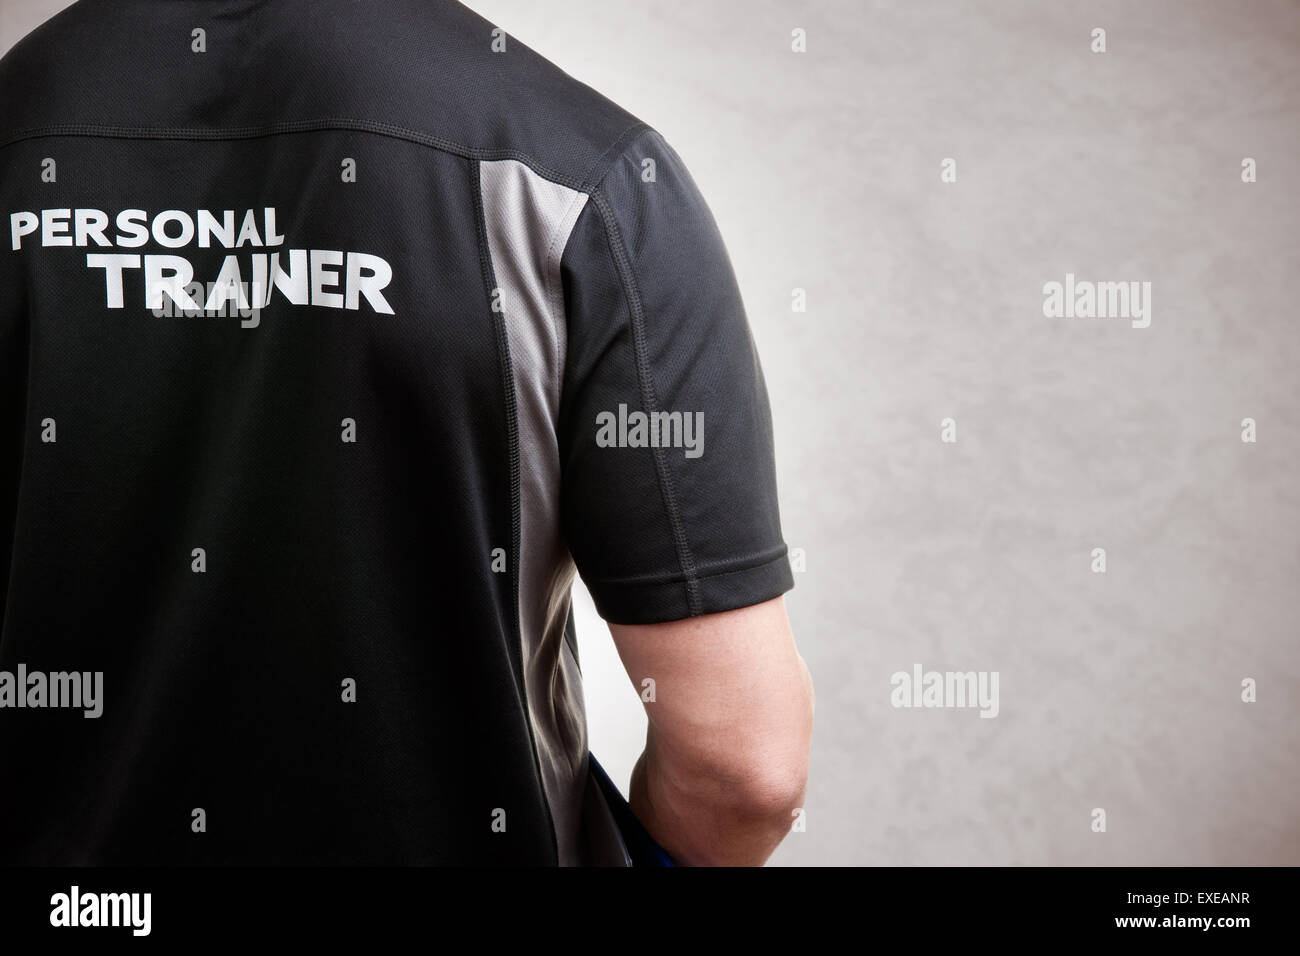 Personal Trainer, with his back facing the camera, in a grey background - Stock Image